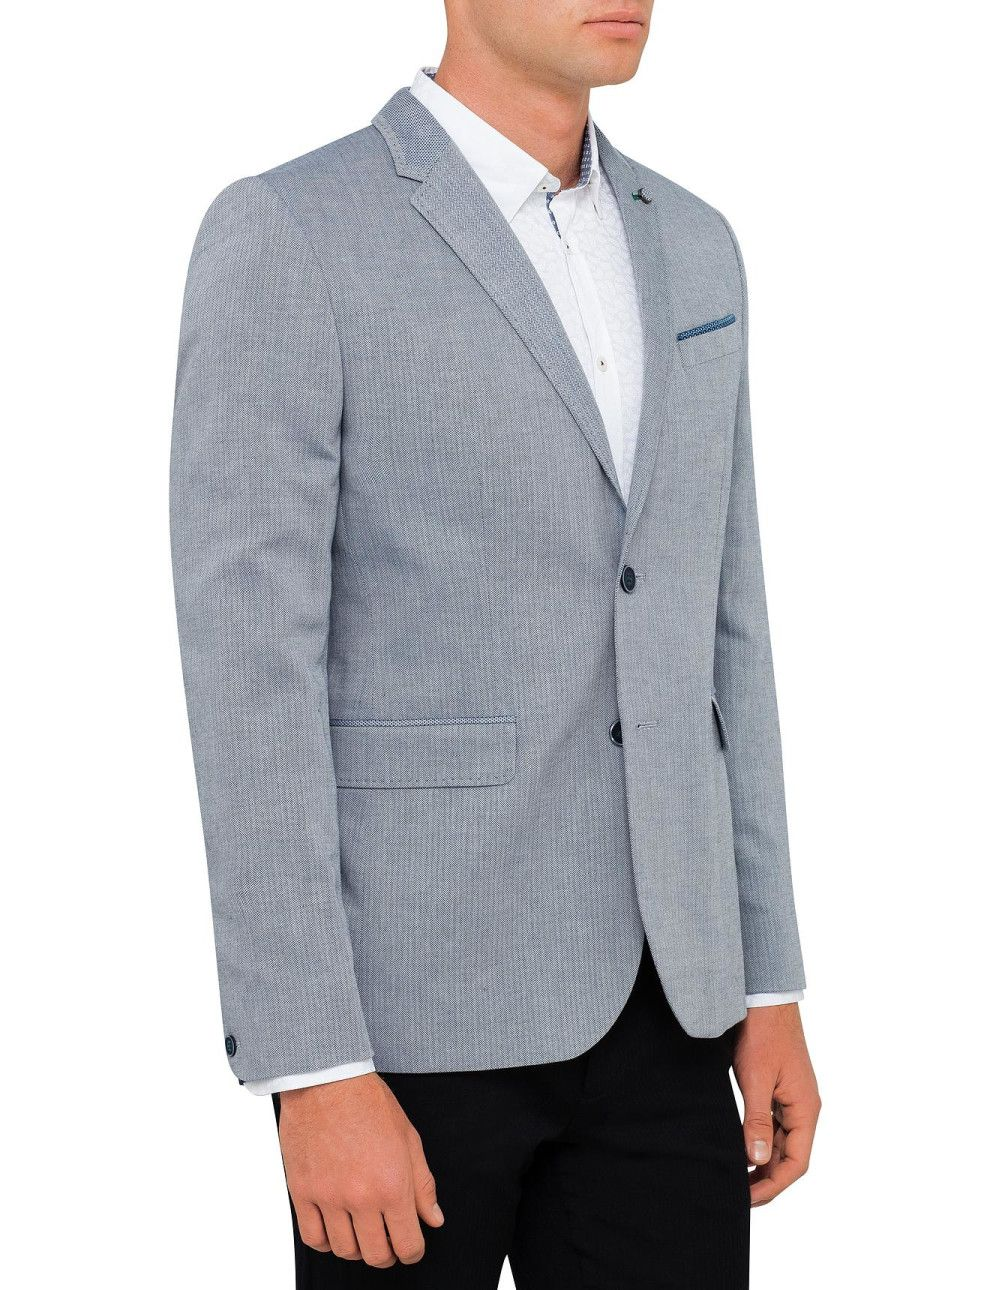 Linen Herringbone Jacket | David Jones | wedding suit ideas ...